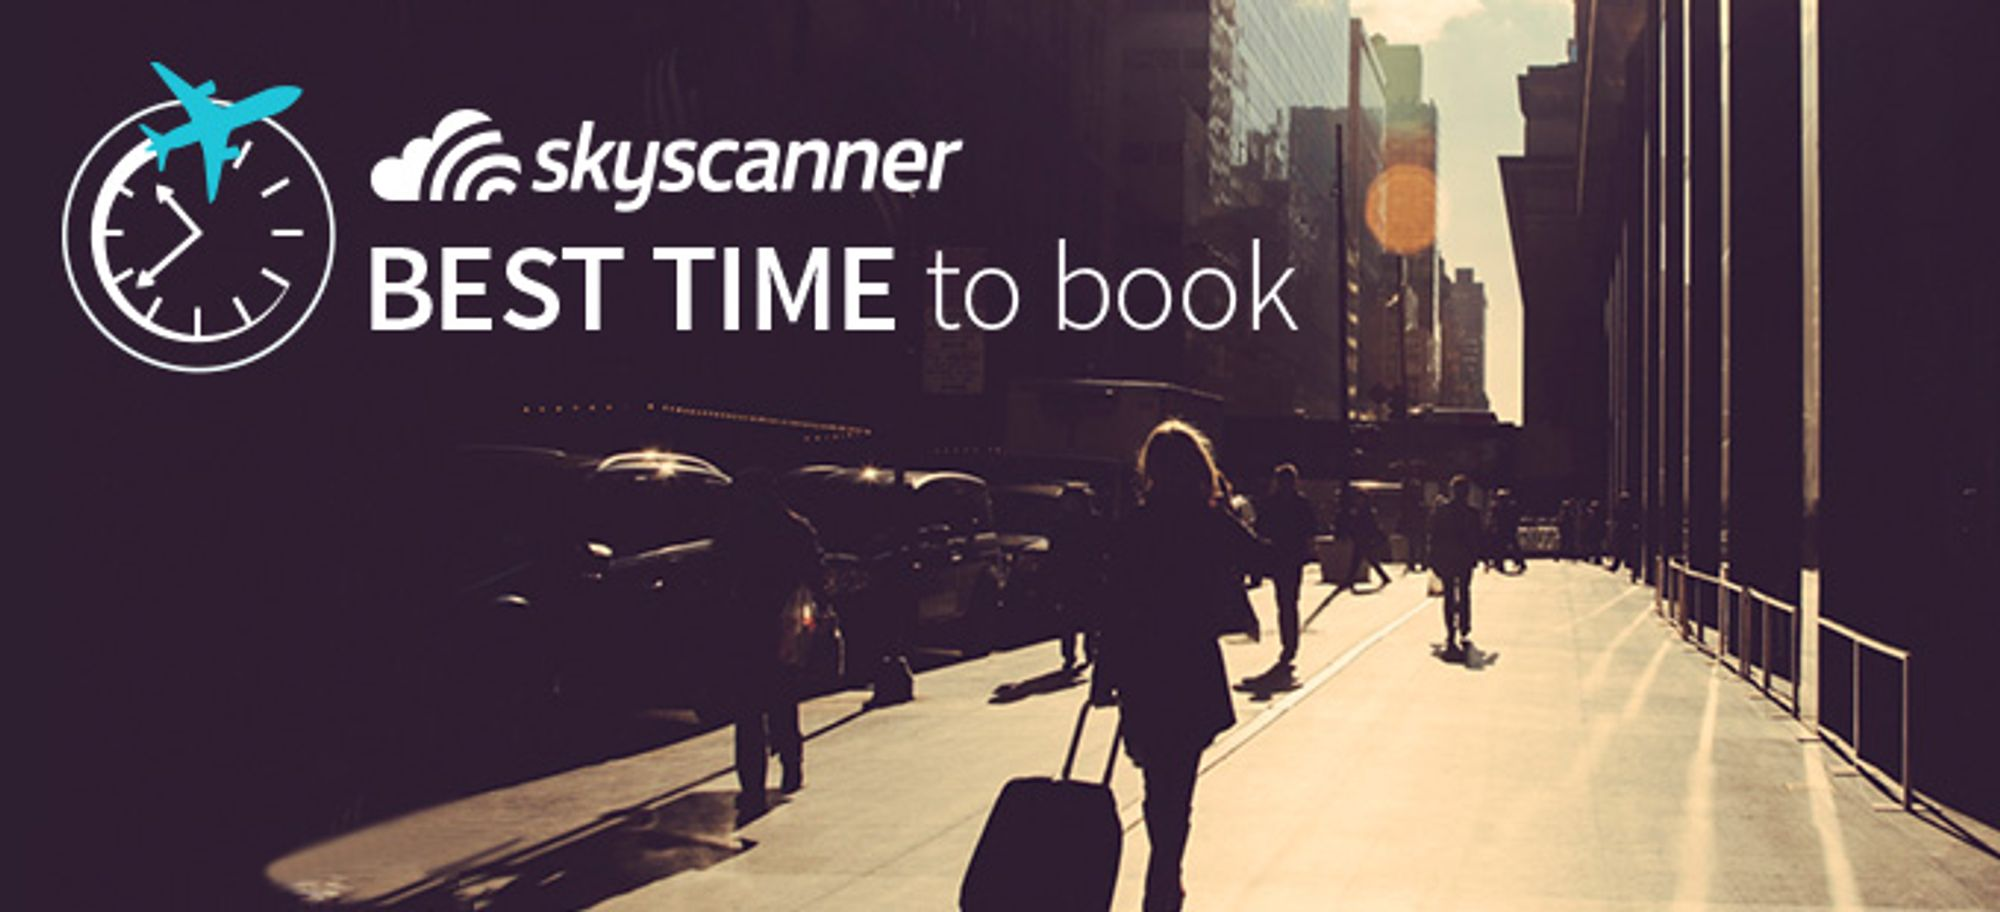 Best time to book